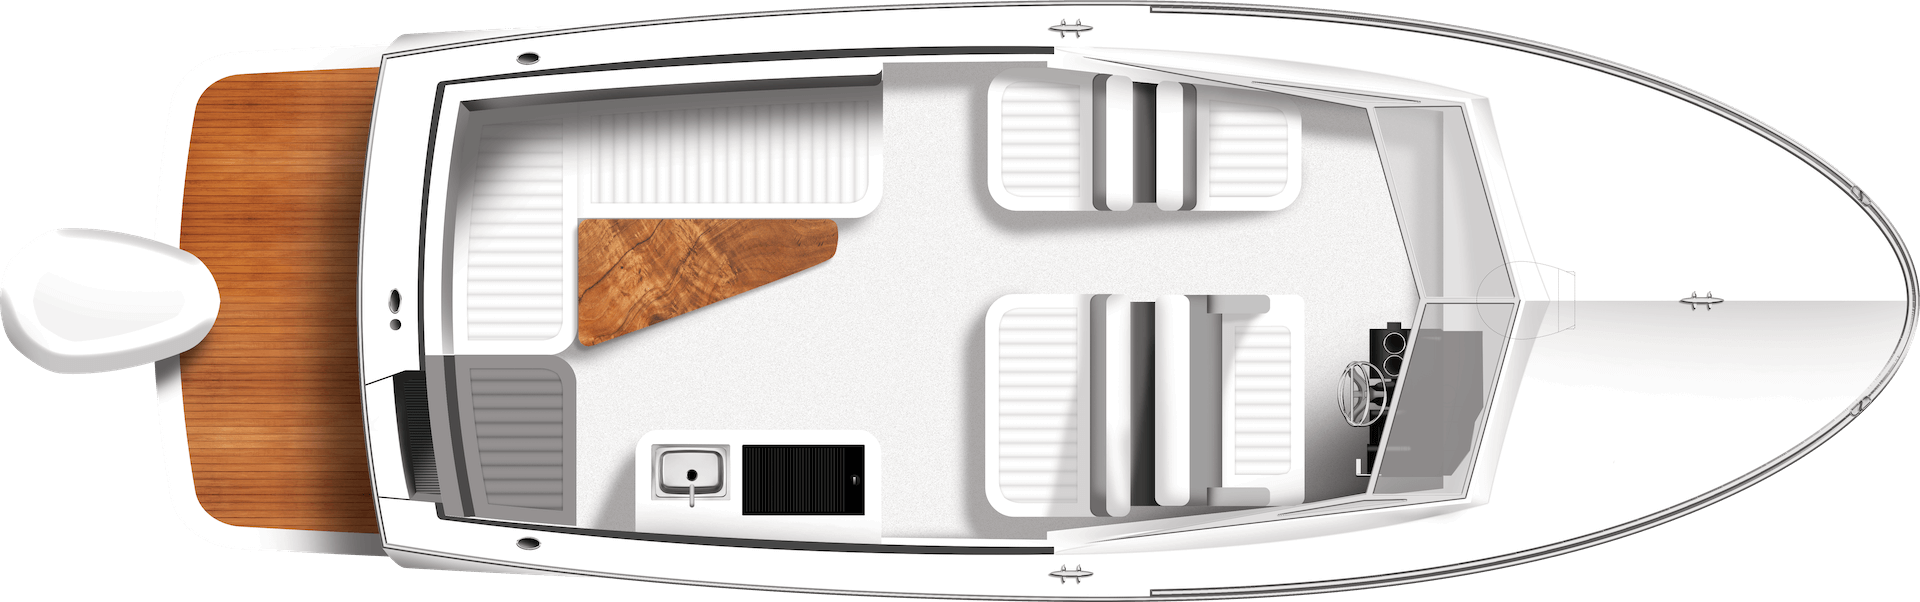 250R Runabout Day Arrangement Overhead Rendering